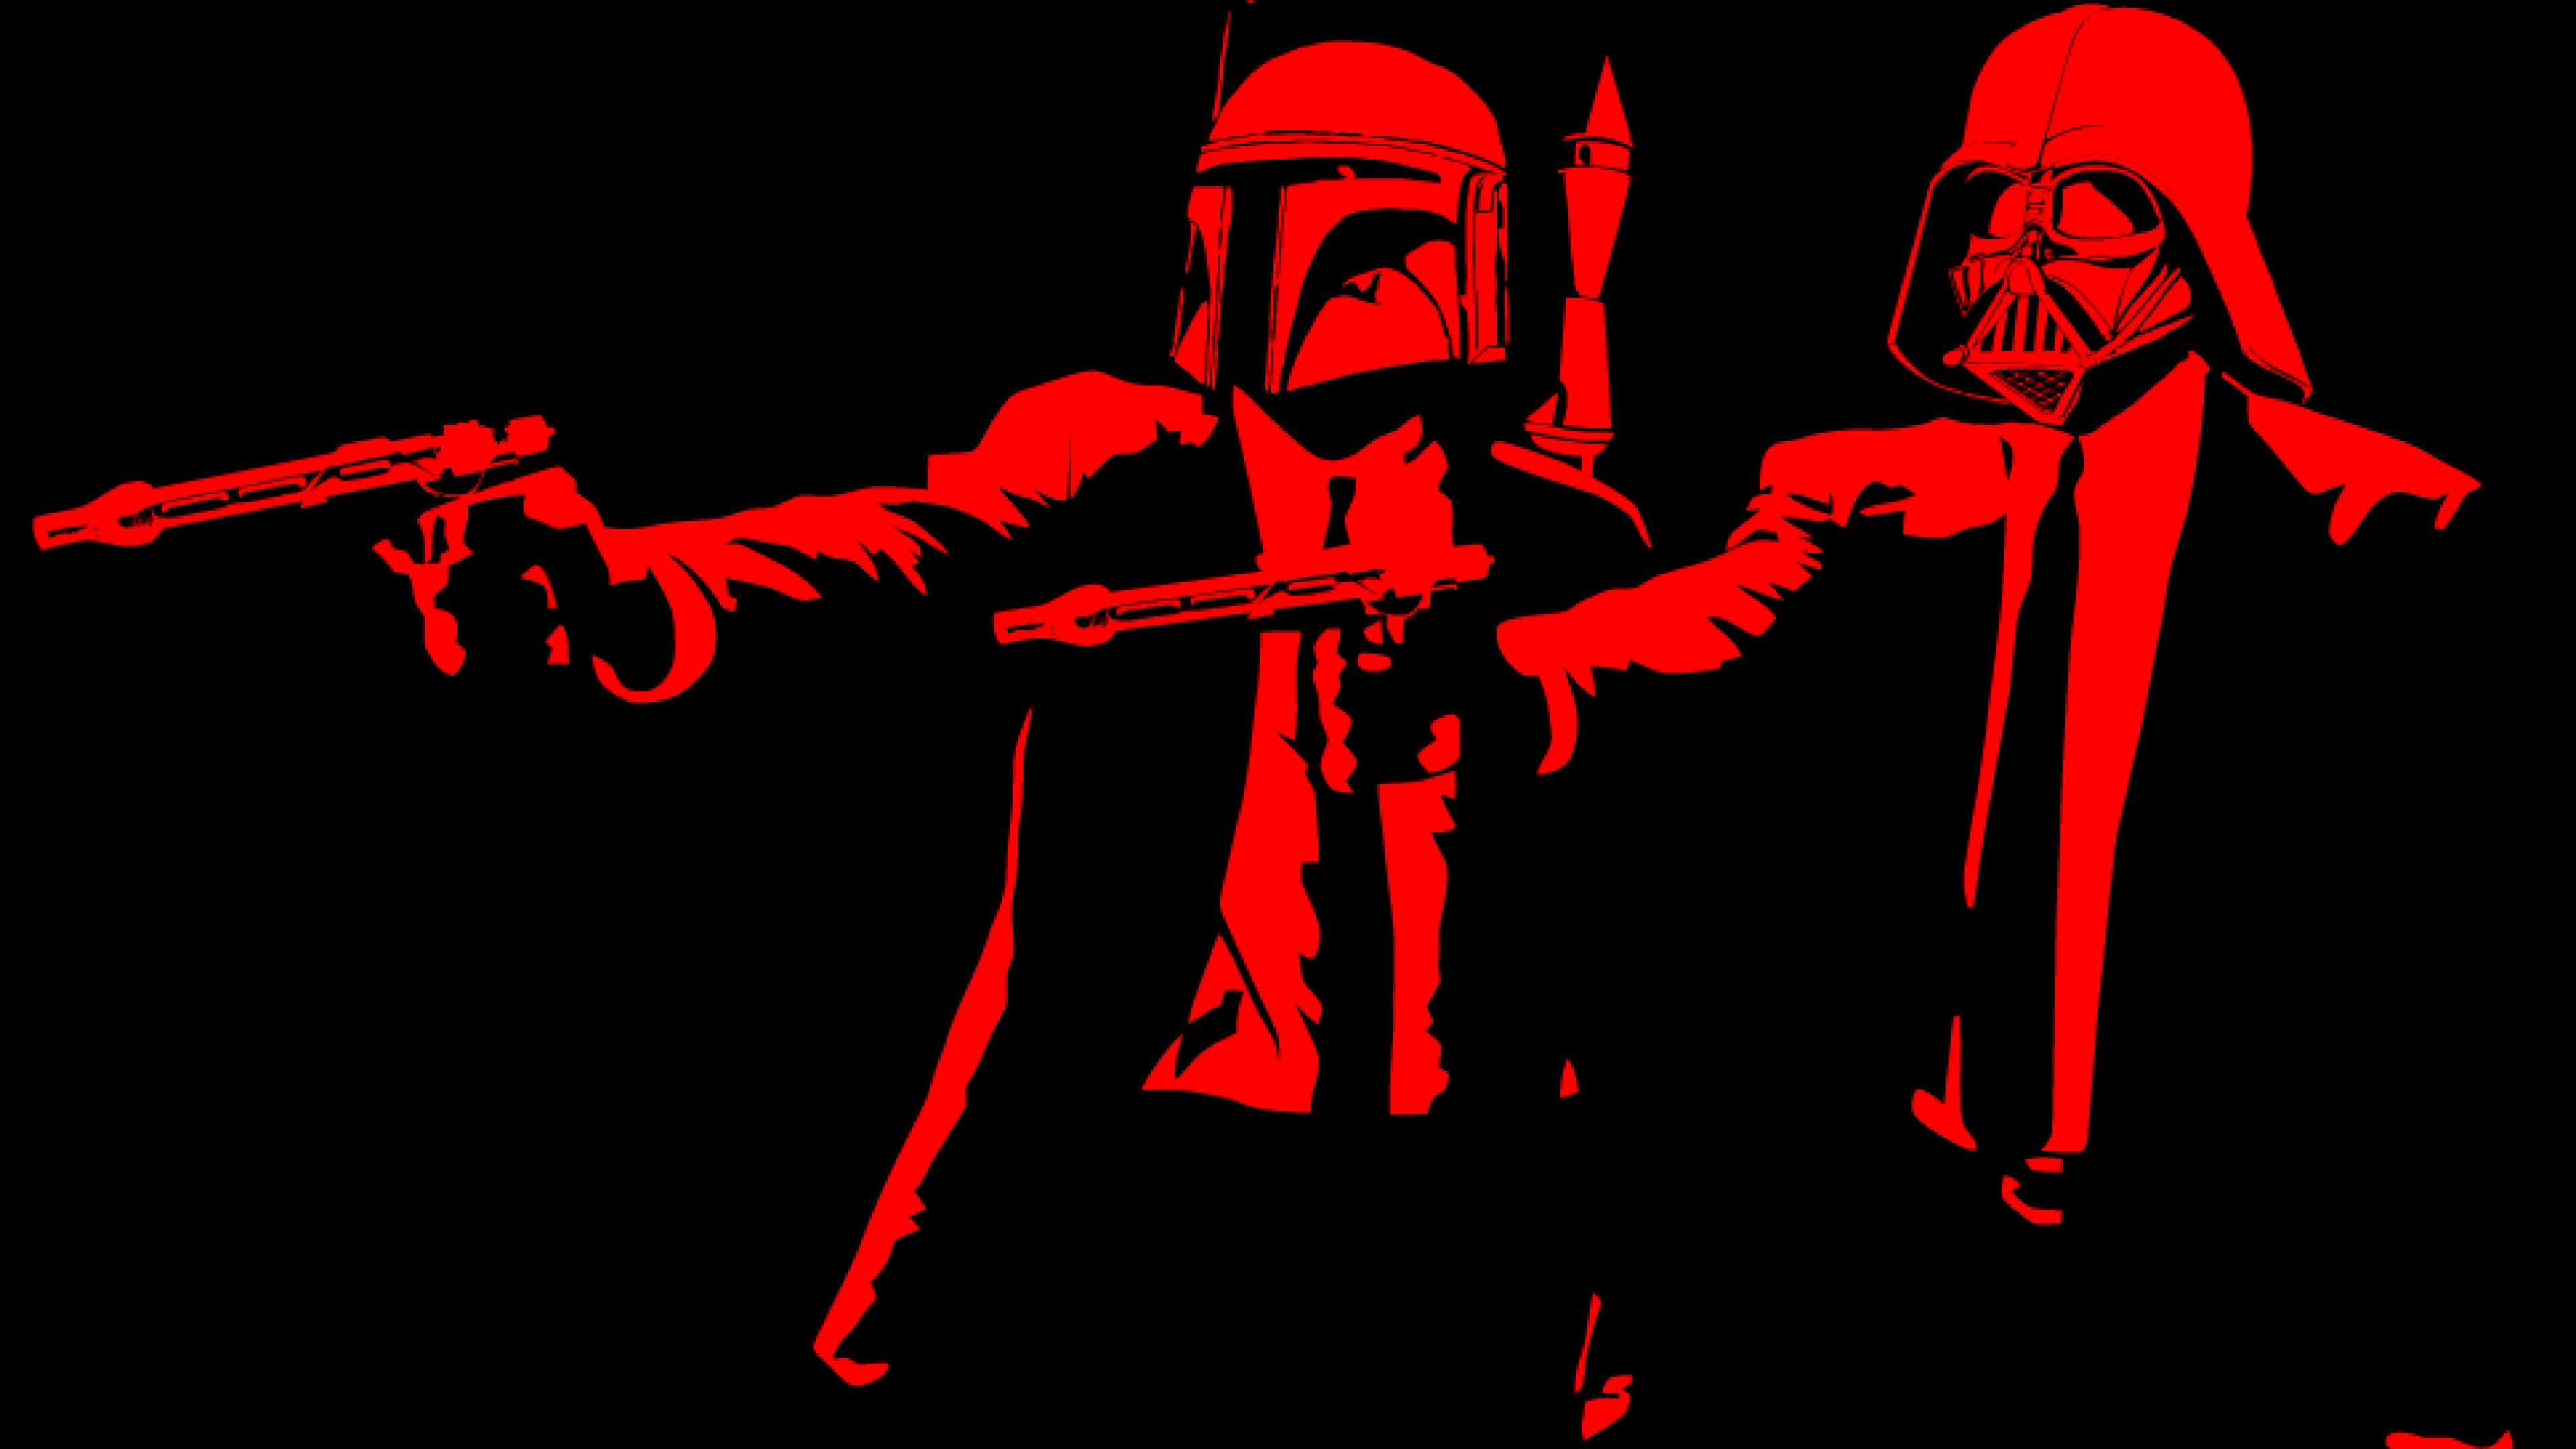 Free Creative Star Wars Pulp Fiction Images On Your Gadgets